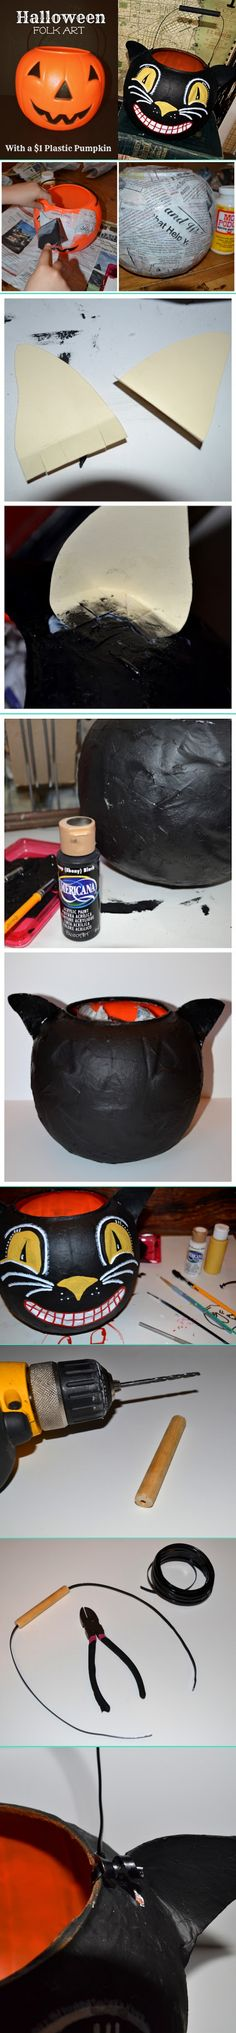 "Black Cat pail-Remove plastic handle, apply bits of newspaper & Mod Podge or paper mache paste to exterior of pumpkin. Paint brush works better than foam brush. Let dry. Cut ear from heavy card stock, fringe ends,  glue to pumpkin behind handle holes, paper mache over ears. Dry. Paint pumpkin black.  Dry. Paint face.  Paint inside vintage orange to disguise plastic. Drill hole thru 3.5"" dowel, fish wire thru, attach to pumpkin."